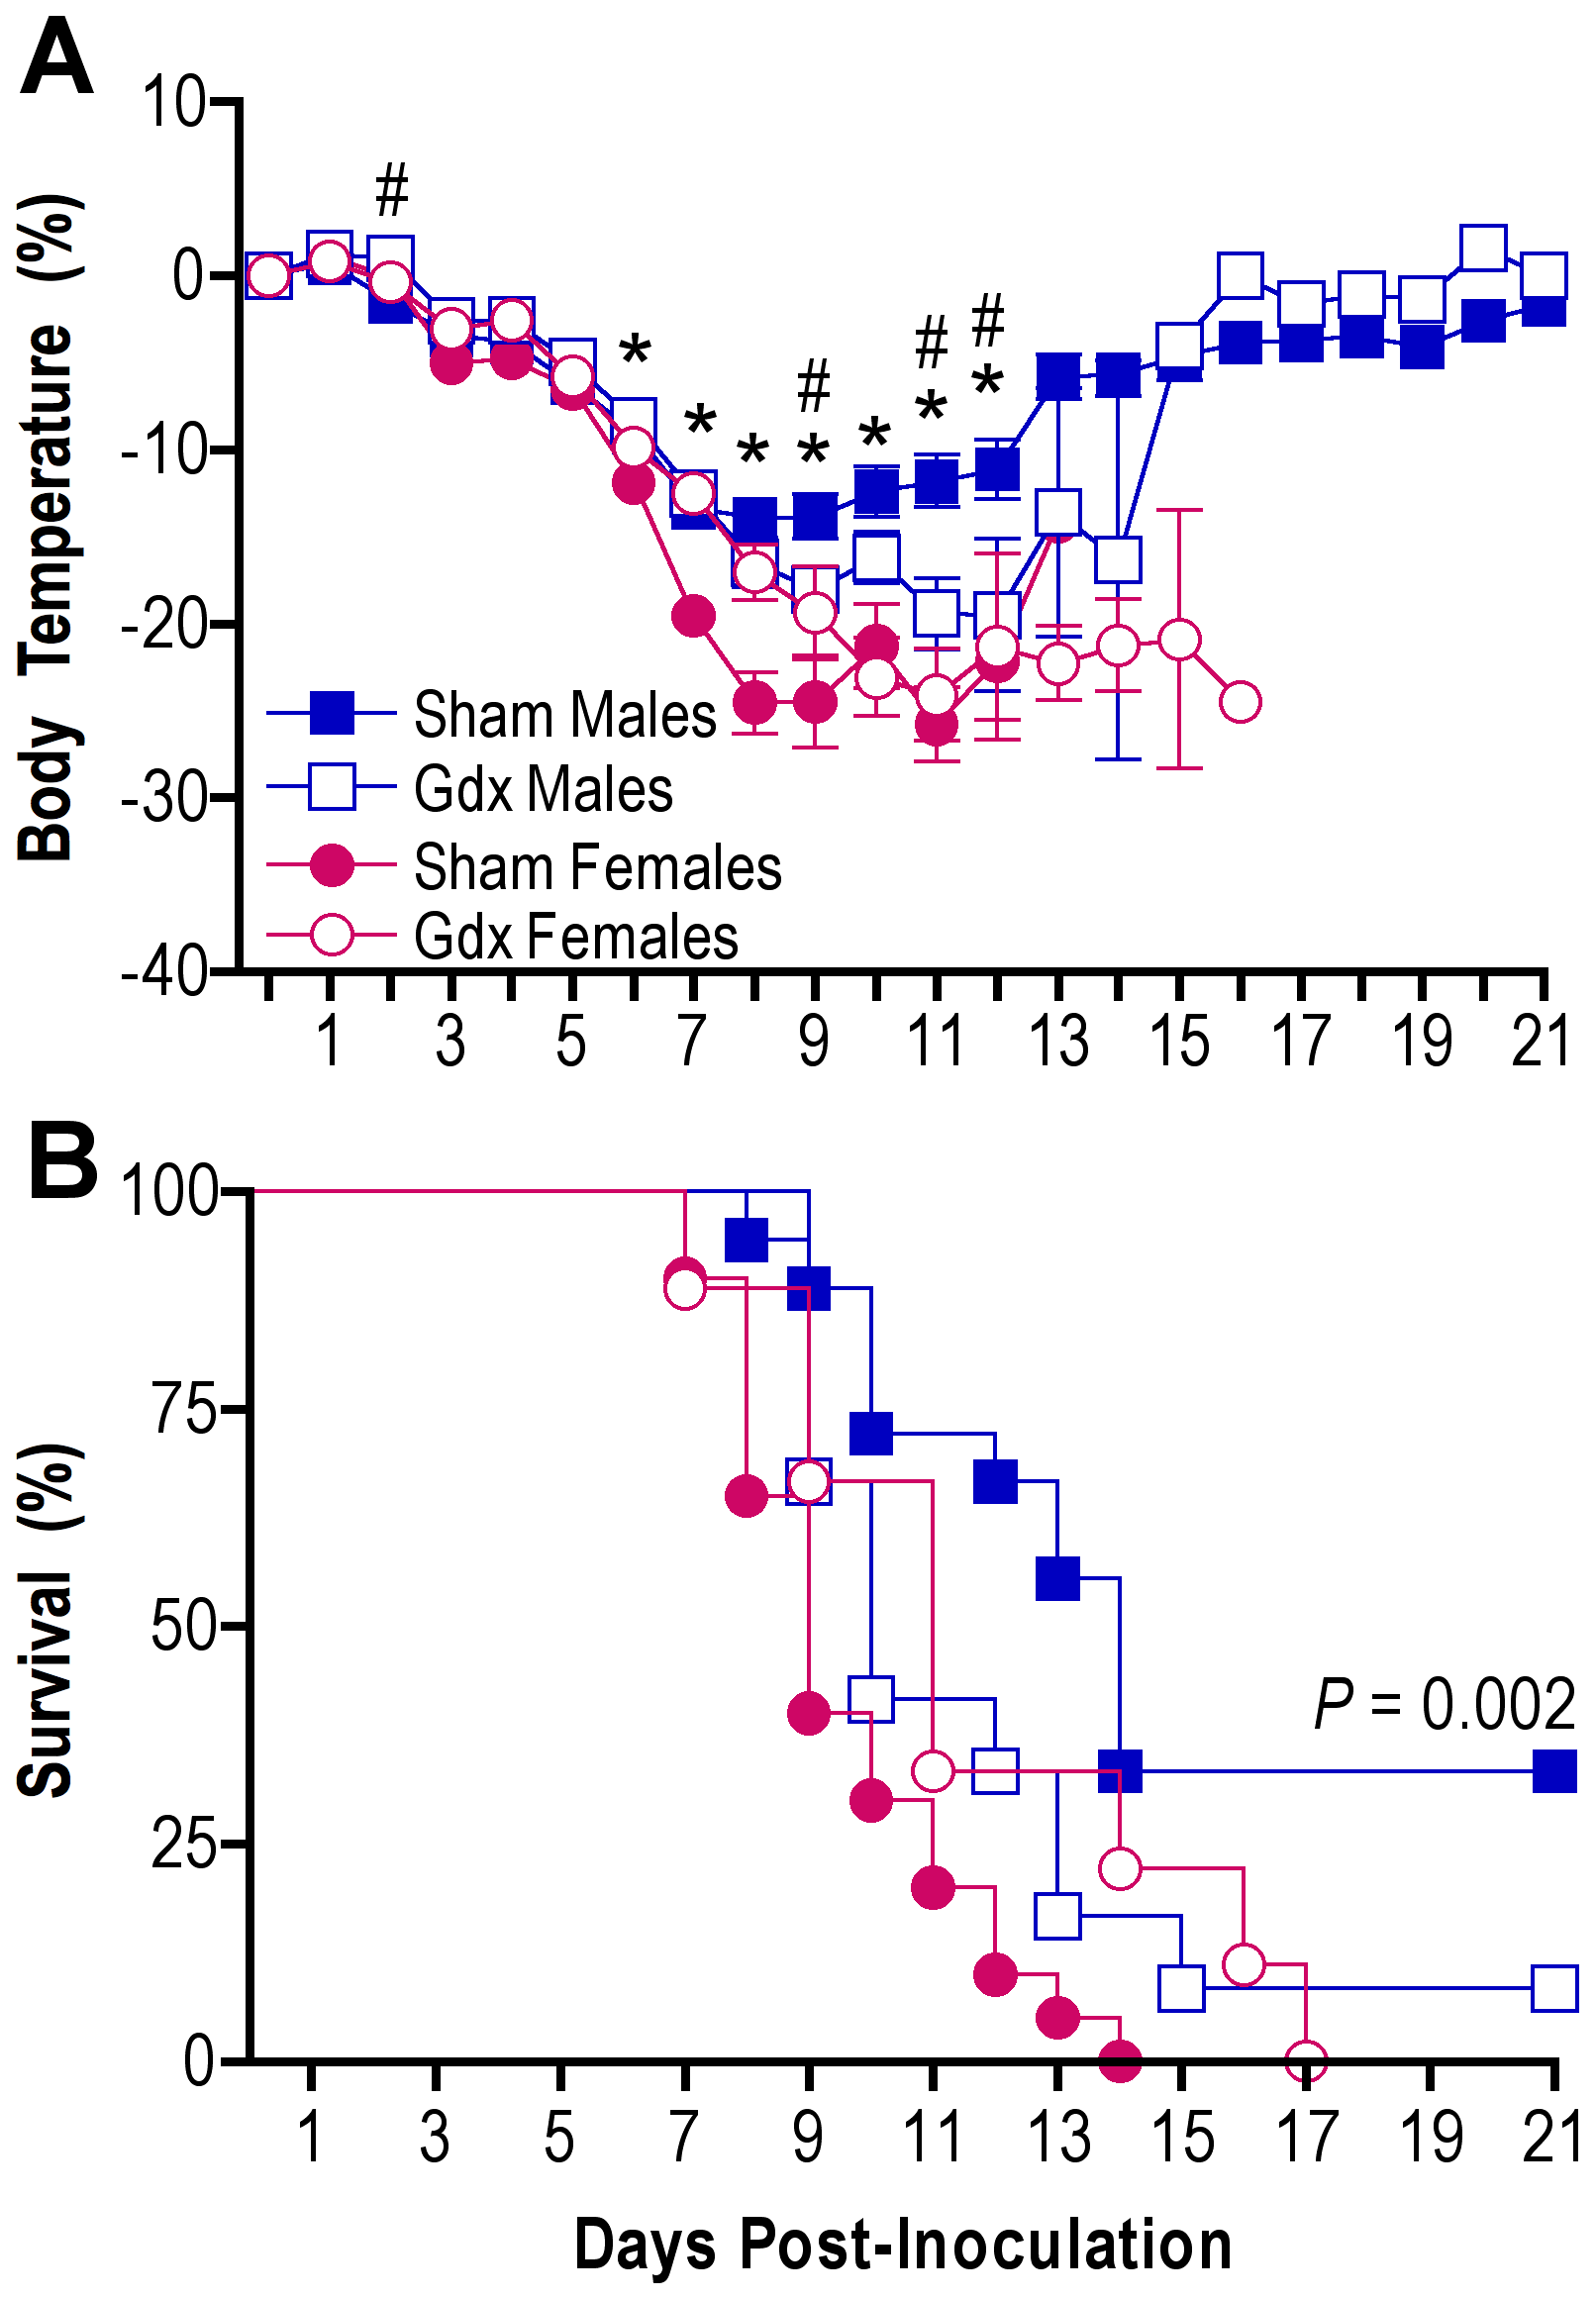 Removal of the gonads reduces the sex difference in influenza pathogenesis.